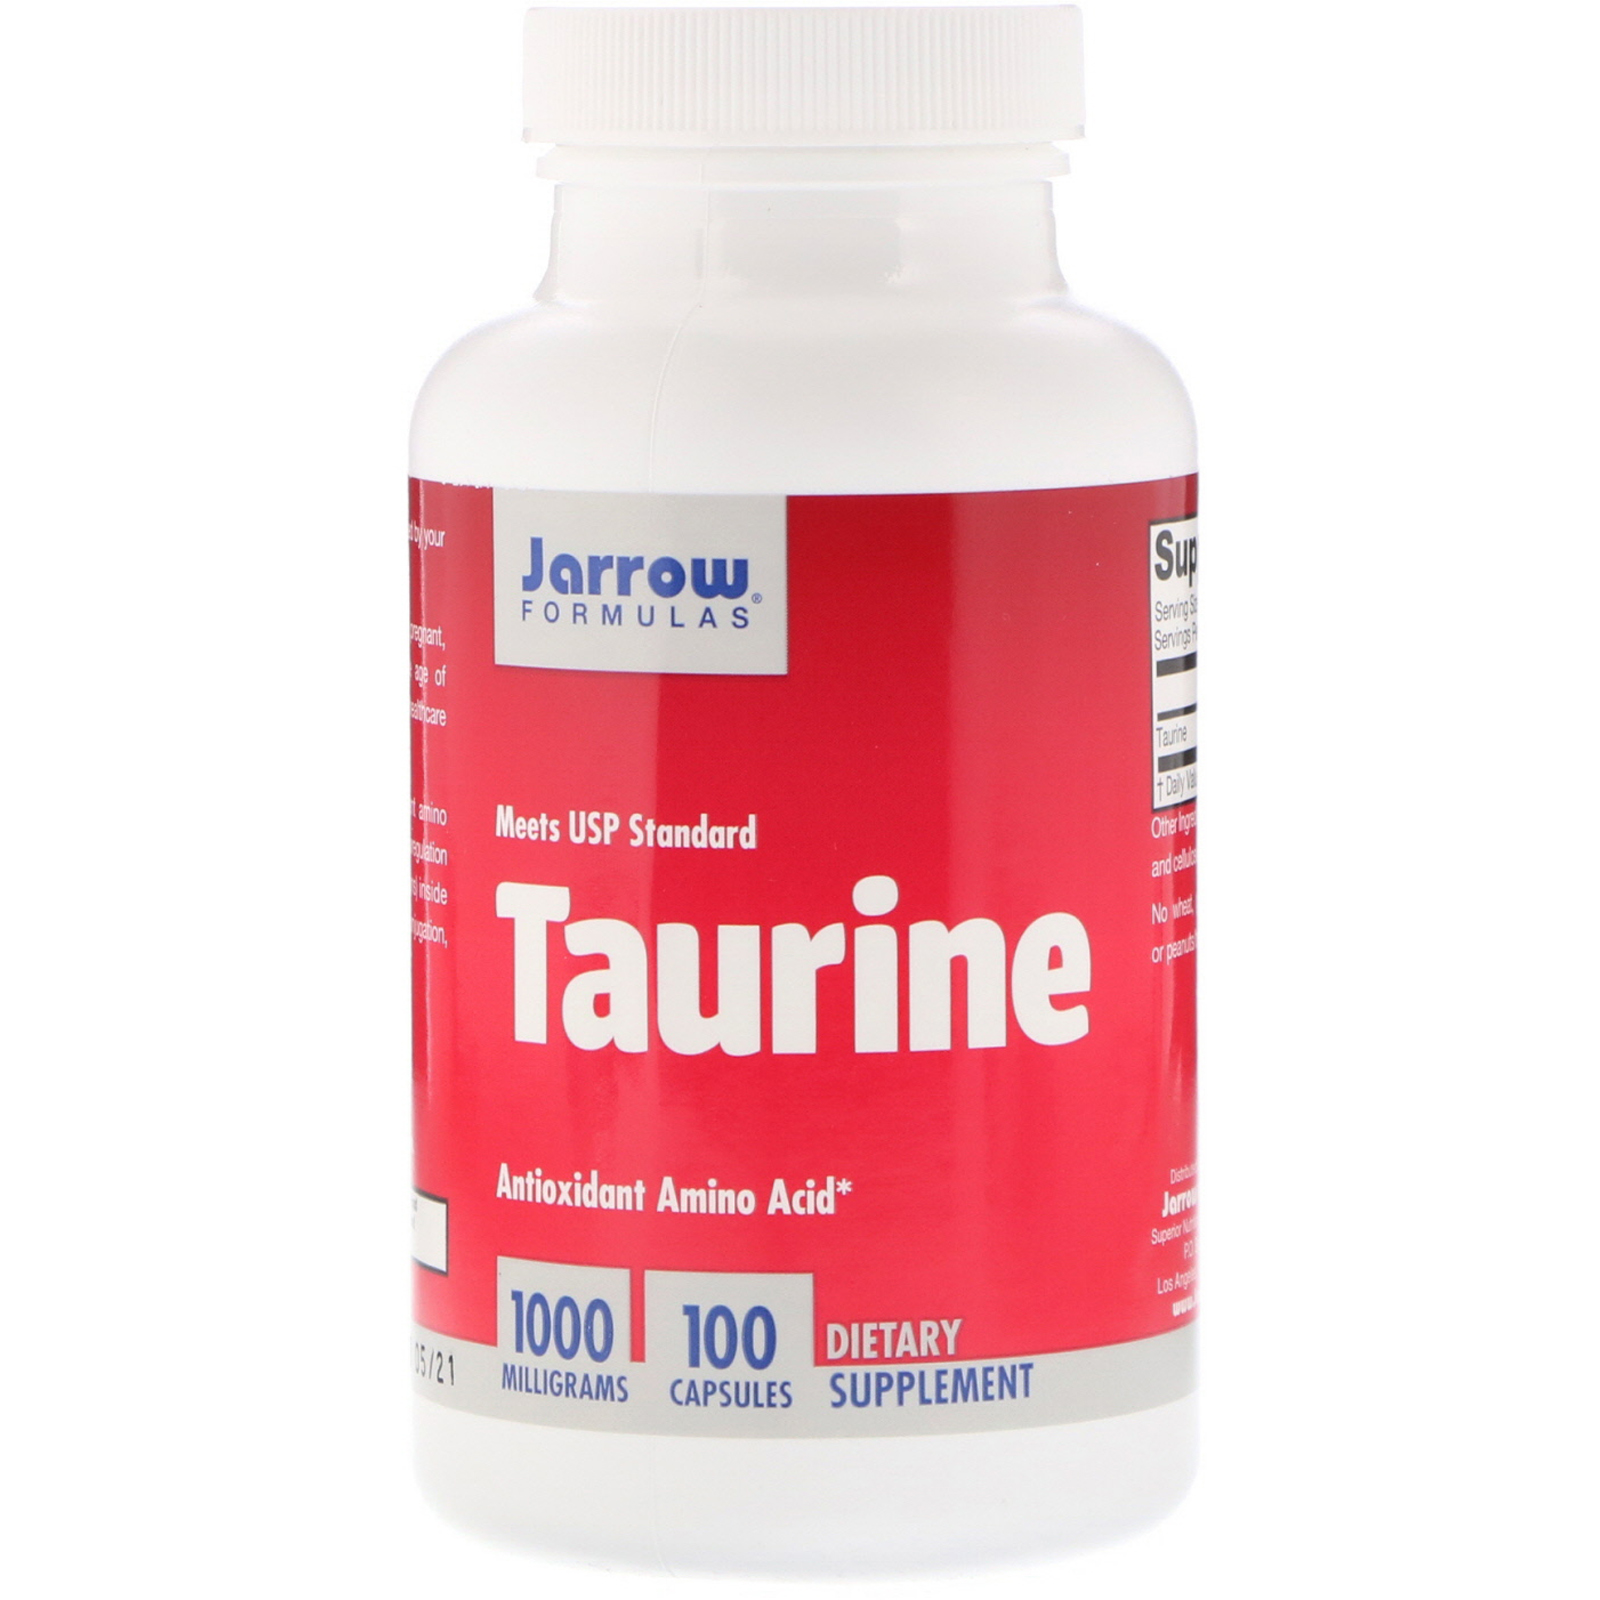 The drug Taurine (eye drops): the instruction